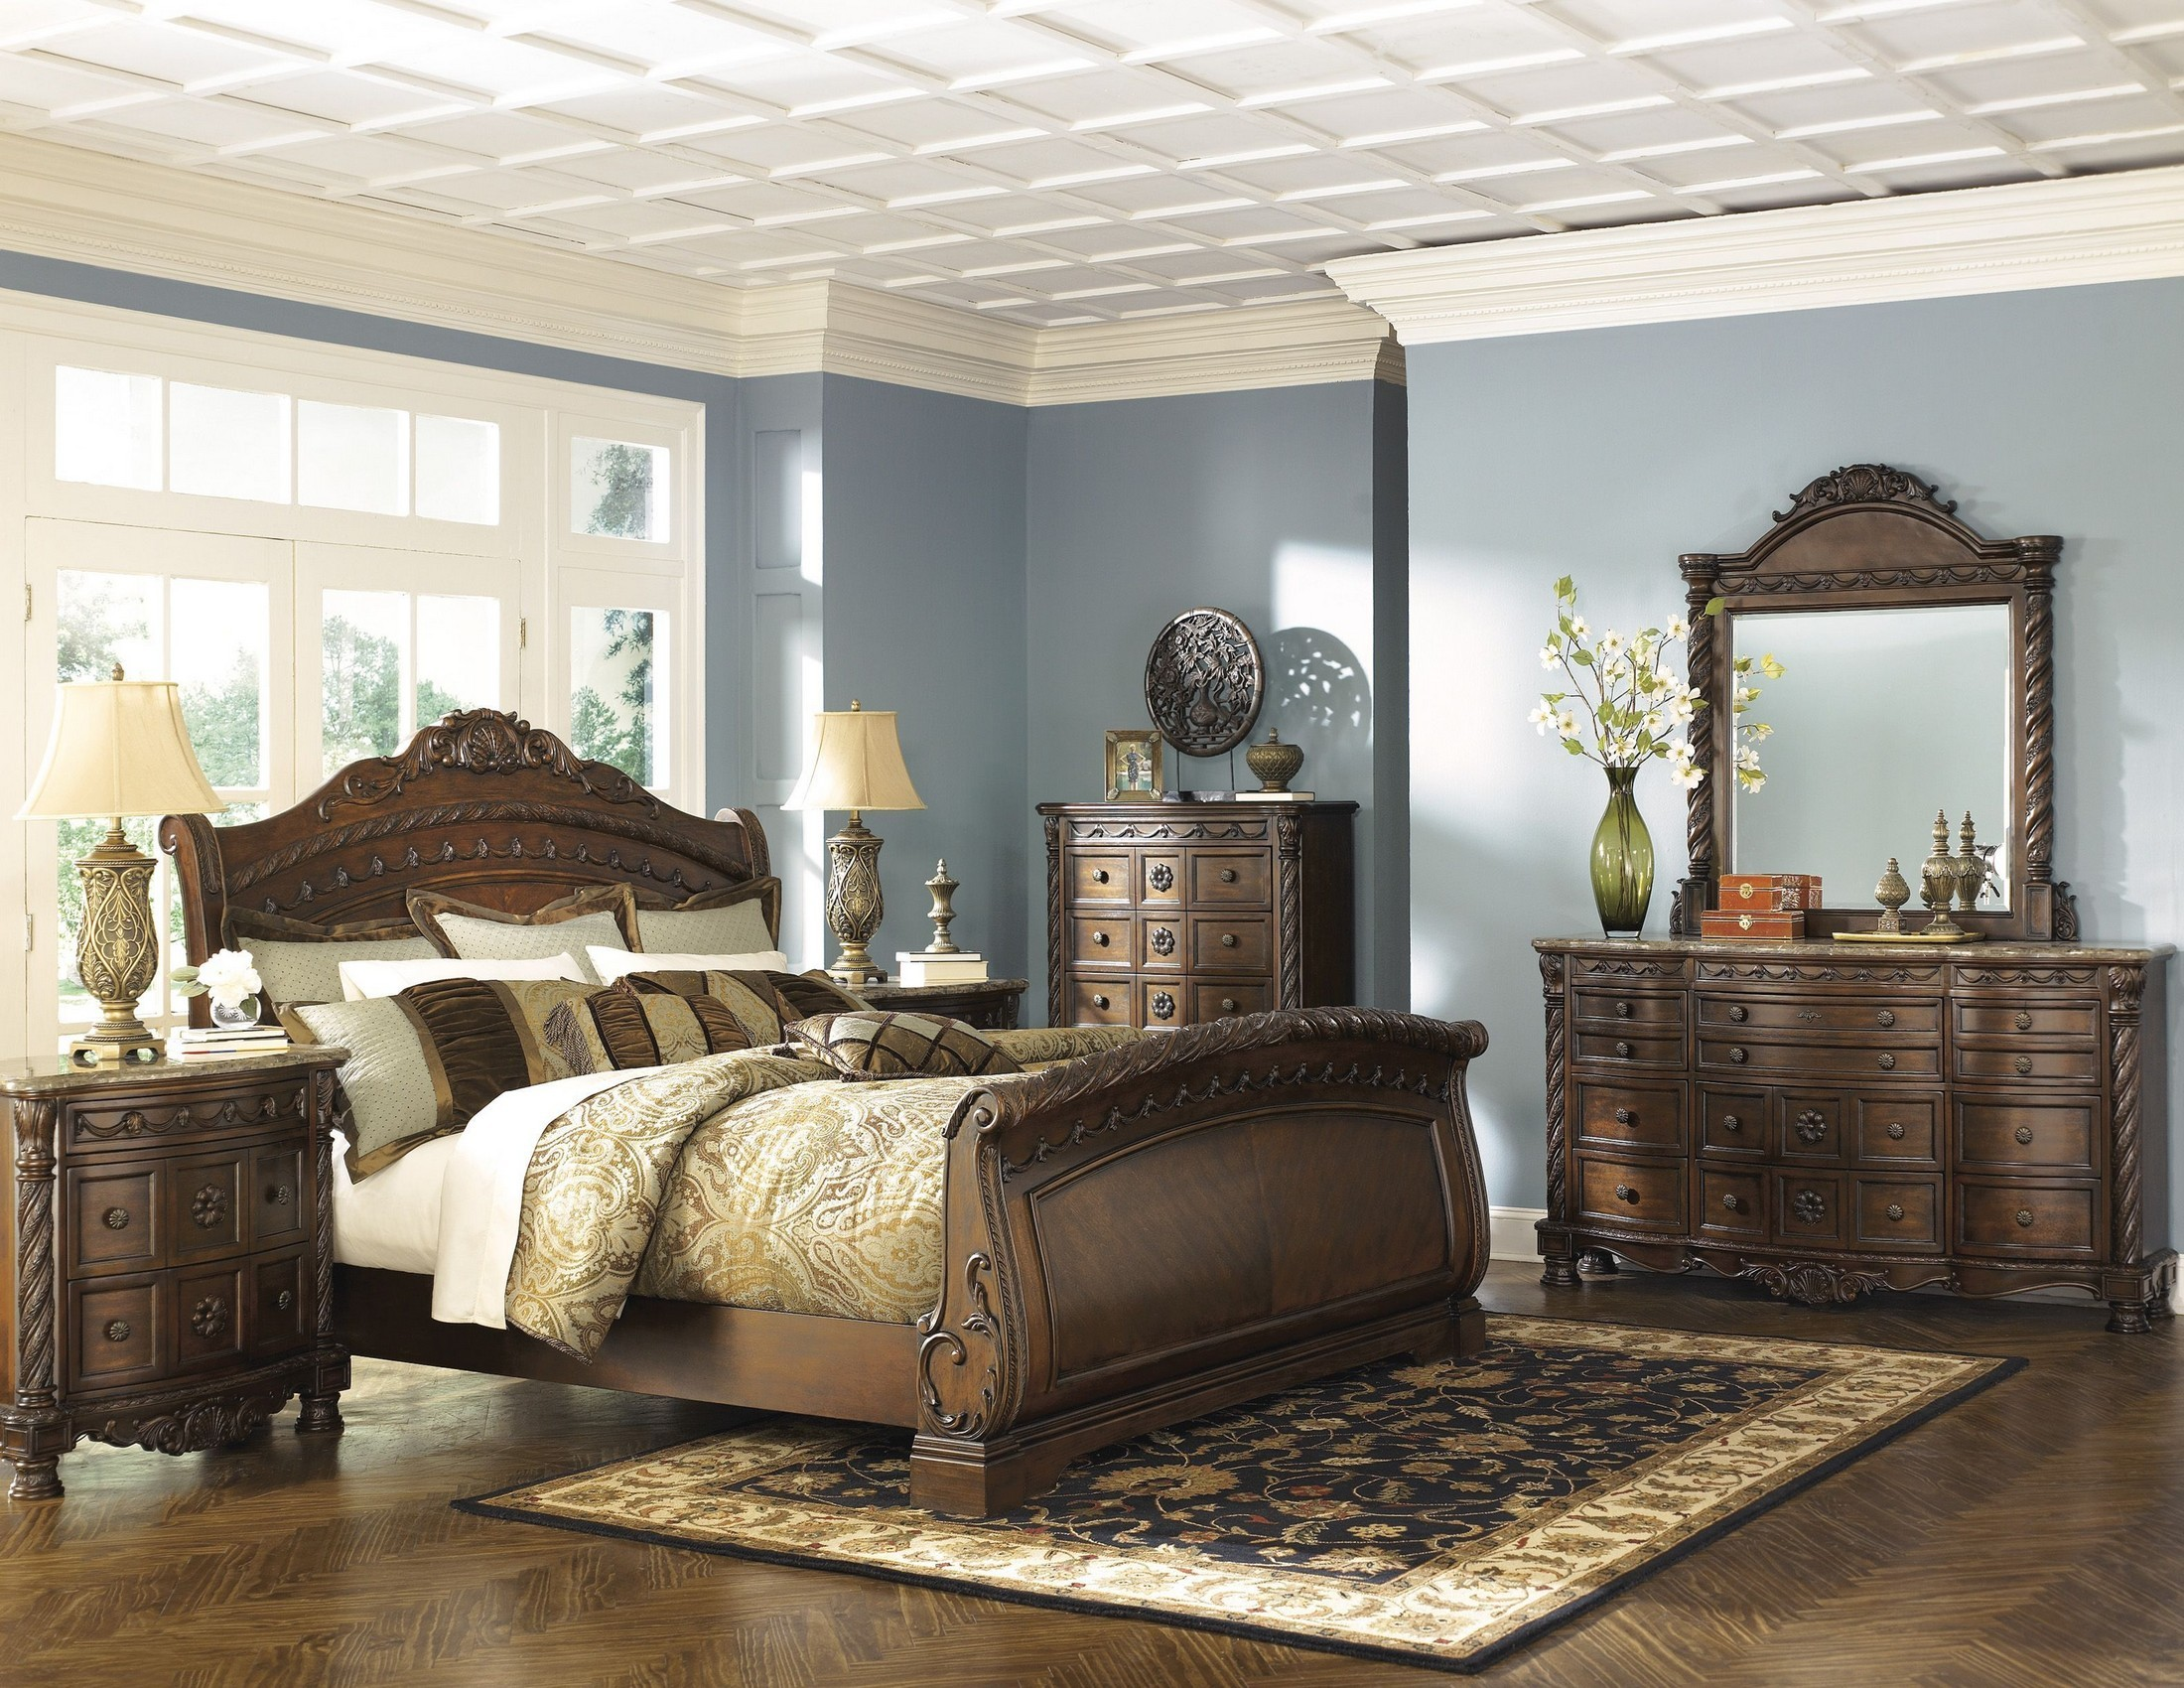 panel room from bedroom coleman black pulaski caldwell bed set furniture htm brown rp